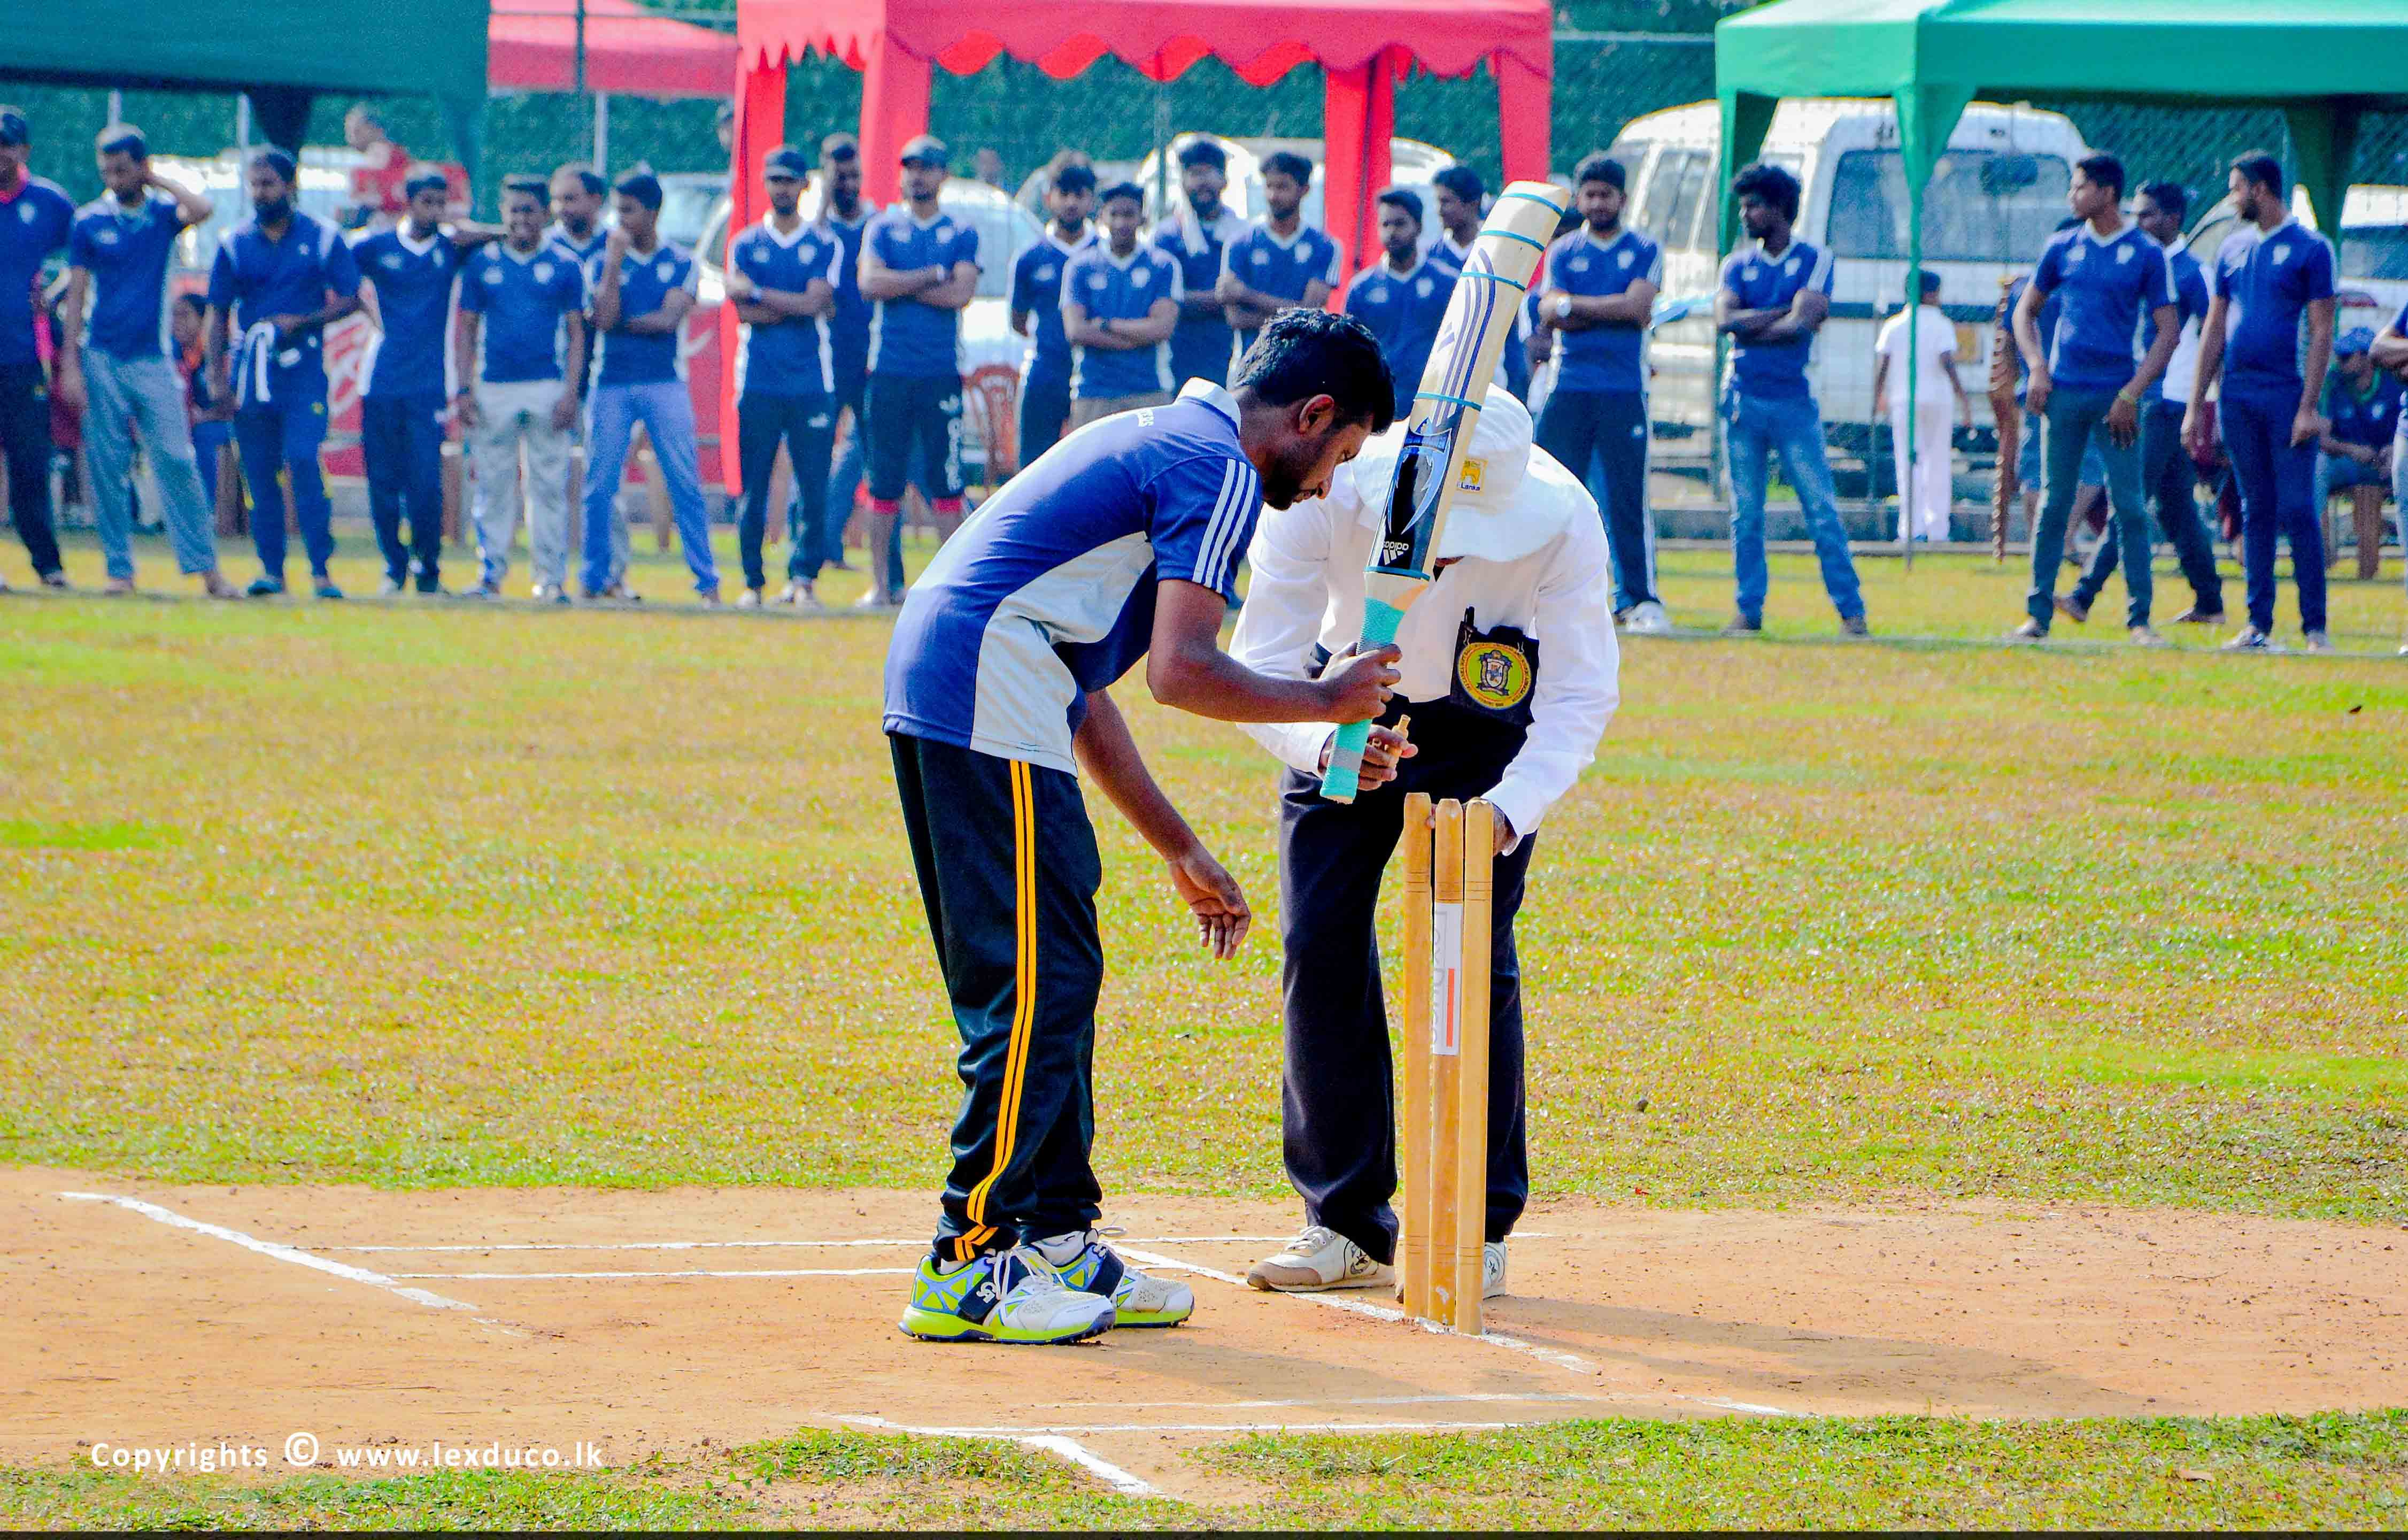 Lex Duco Annual Cricket Tournament - 2016 | Lex Duco